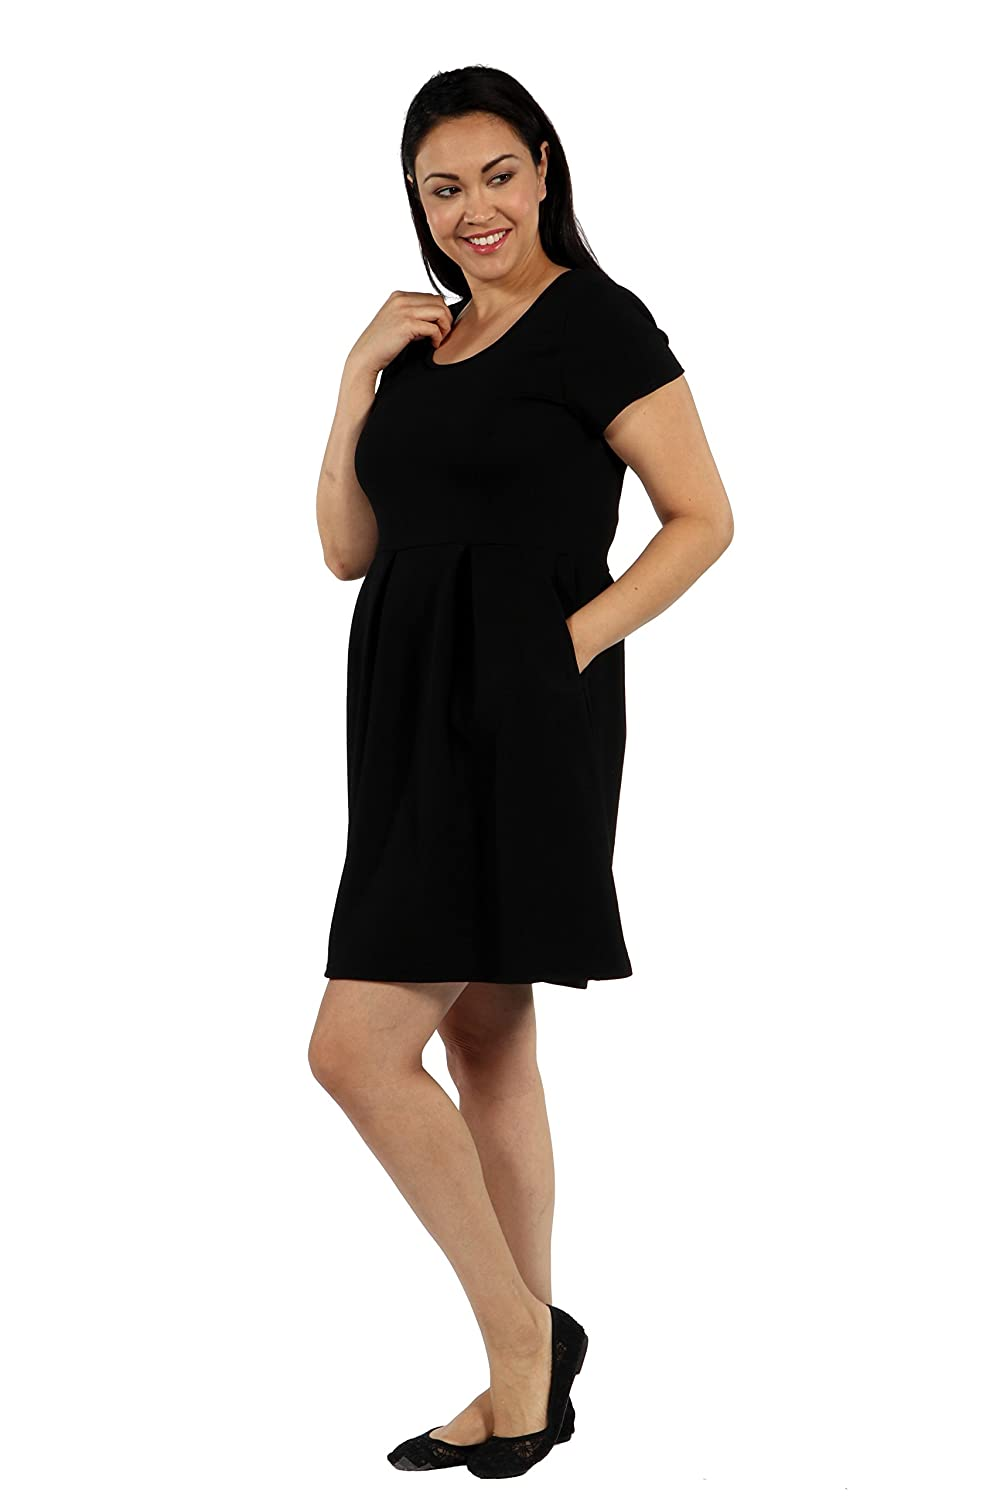 d4a37f43abc10 24seven Comfort Apparel Plus Size Clothing for Women Cap Sleeve Round Neck  Dress with Pockets - Made in USA - (Sizes 1XL-3XL) at Amazon Women s  Clothing ...